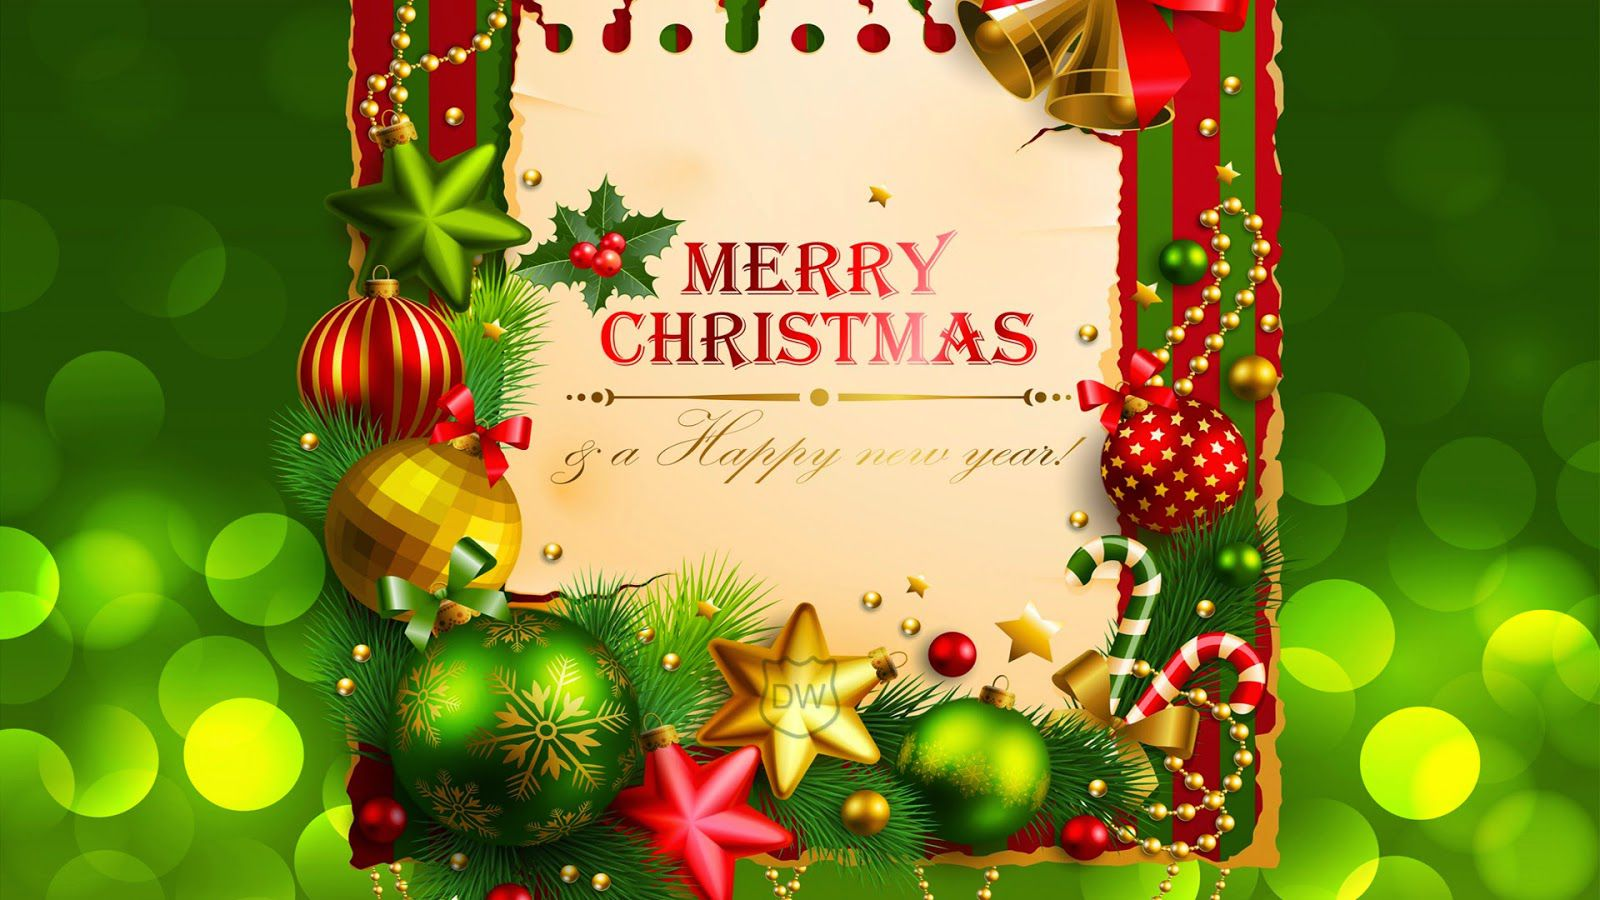 merry christmas and happy new year best wishes messages 2018 - Best Wishes For Christmas